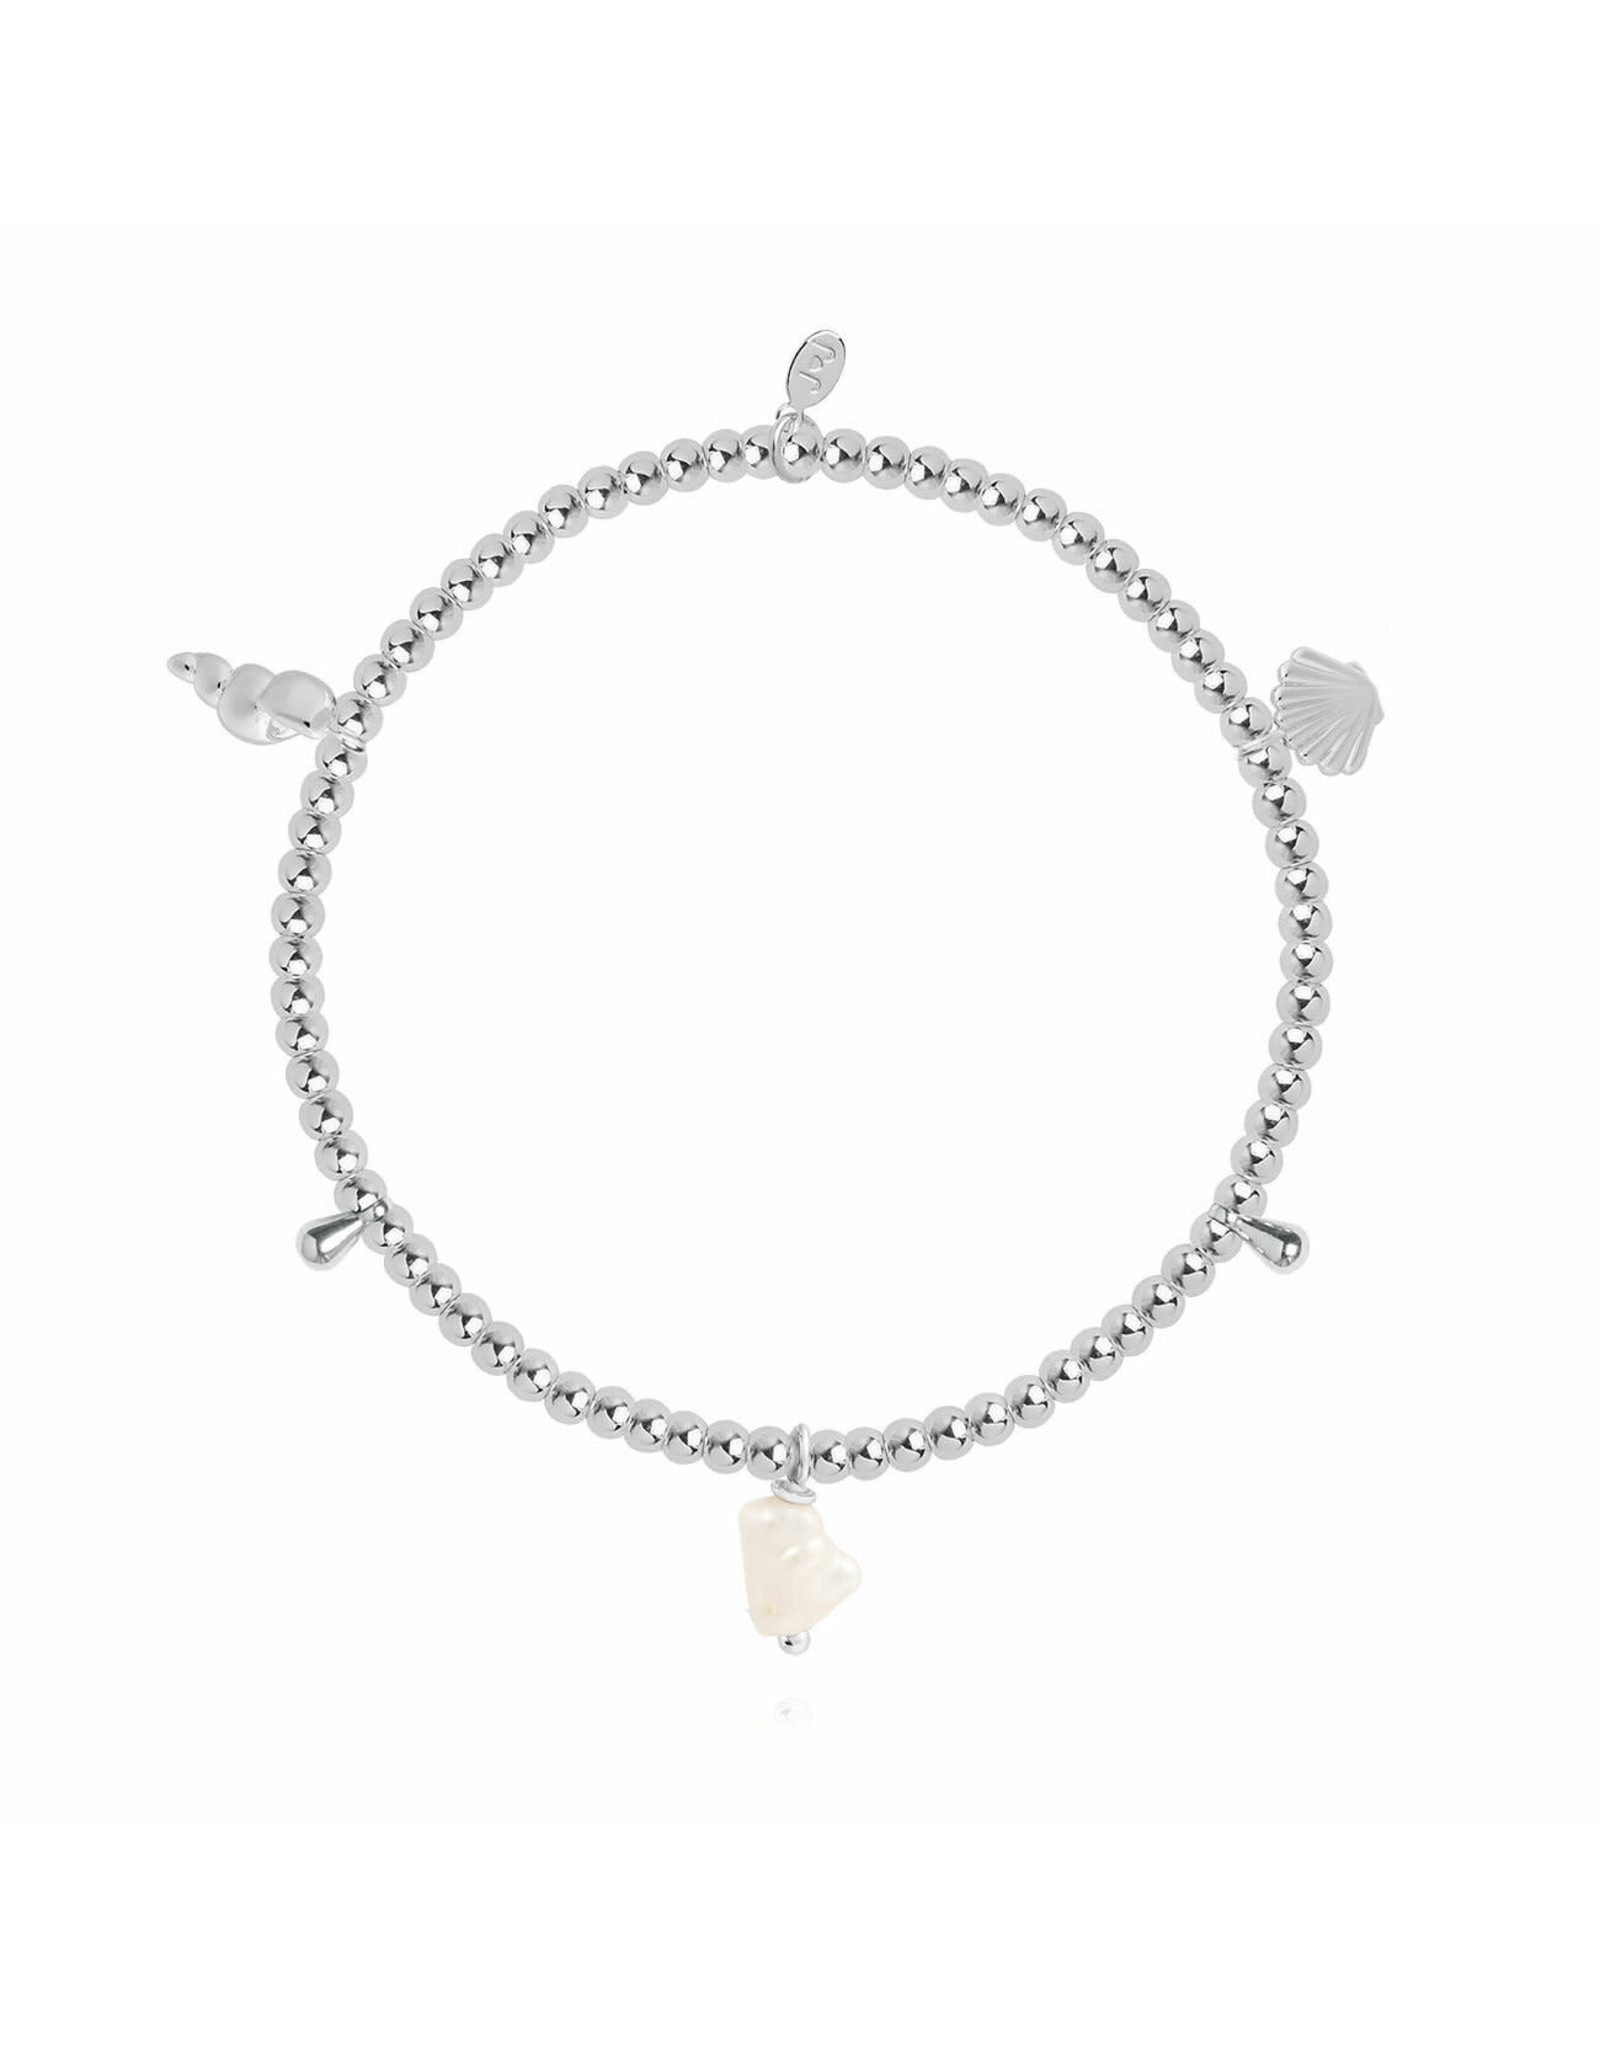 Joma Jewellery Life's a Charm - The World is your Oyster